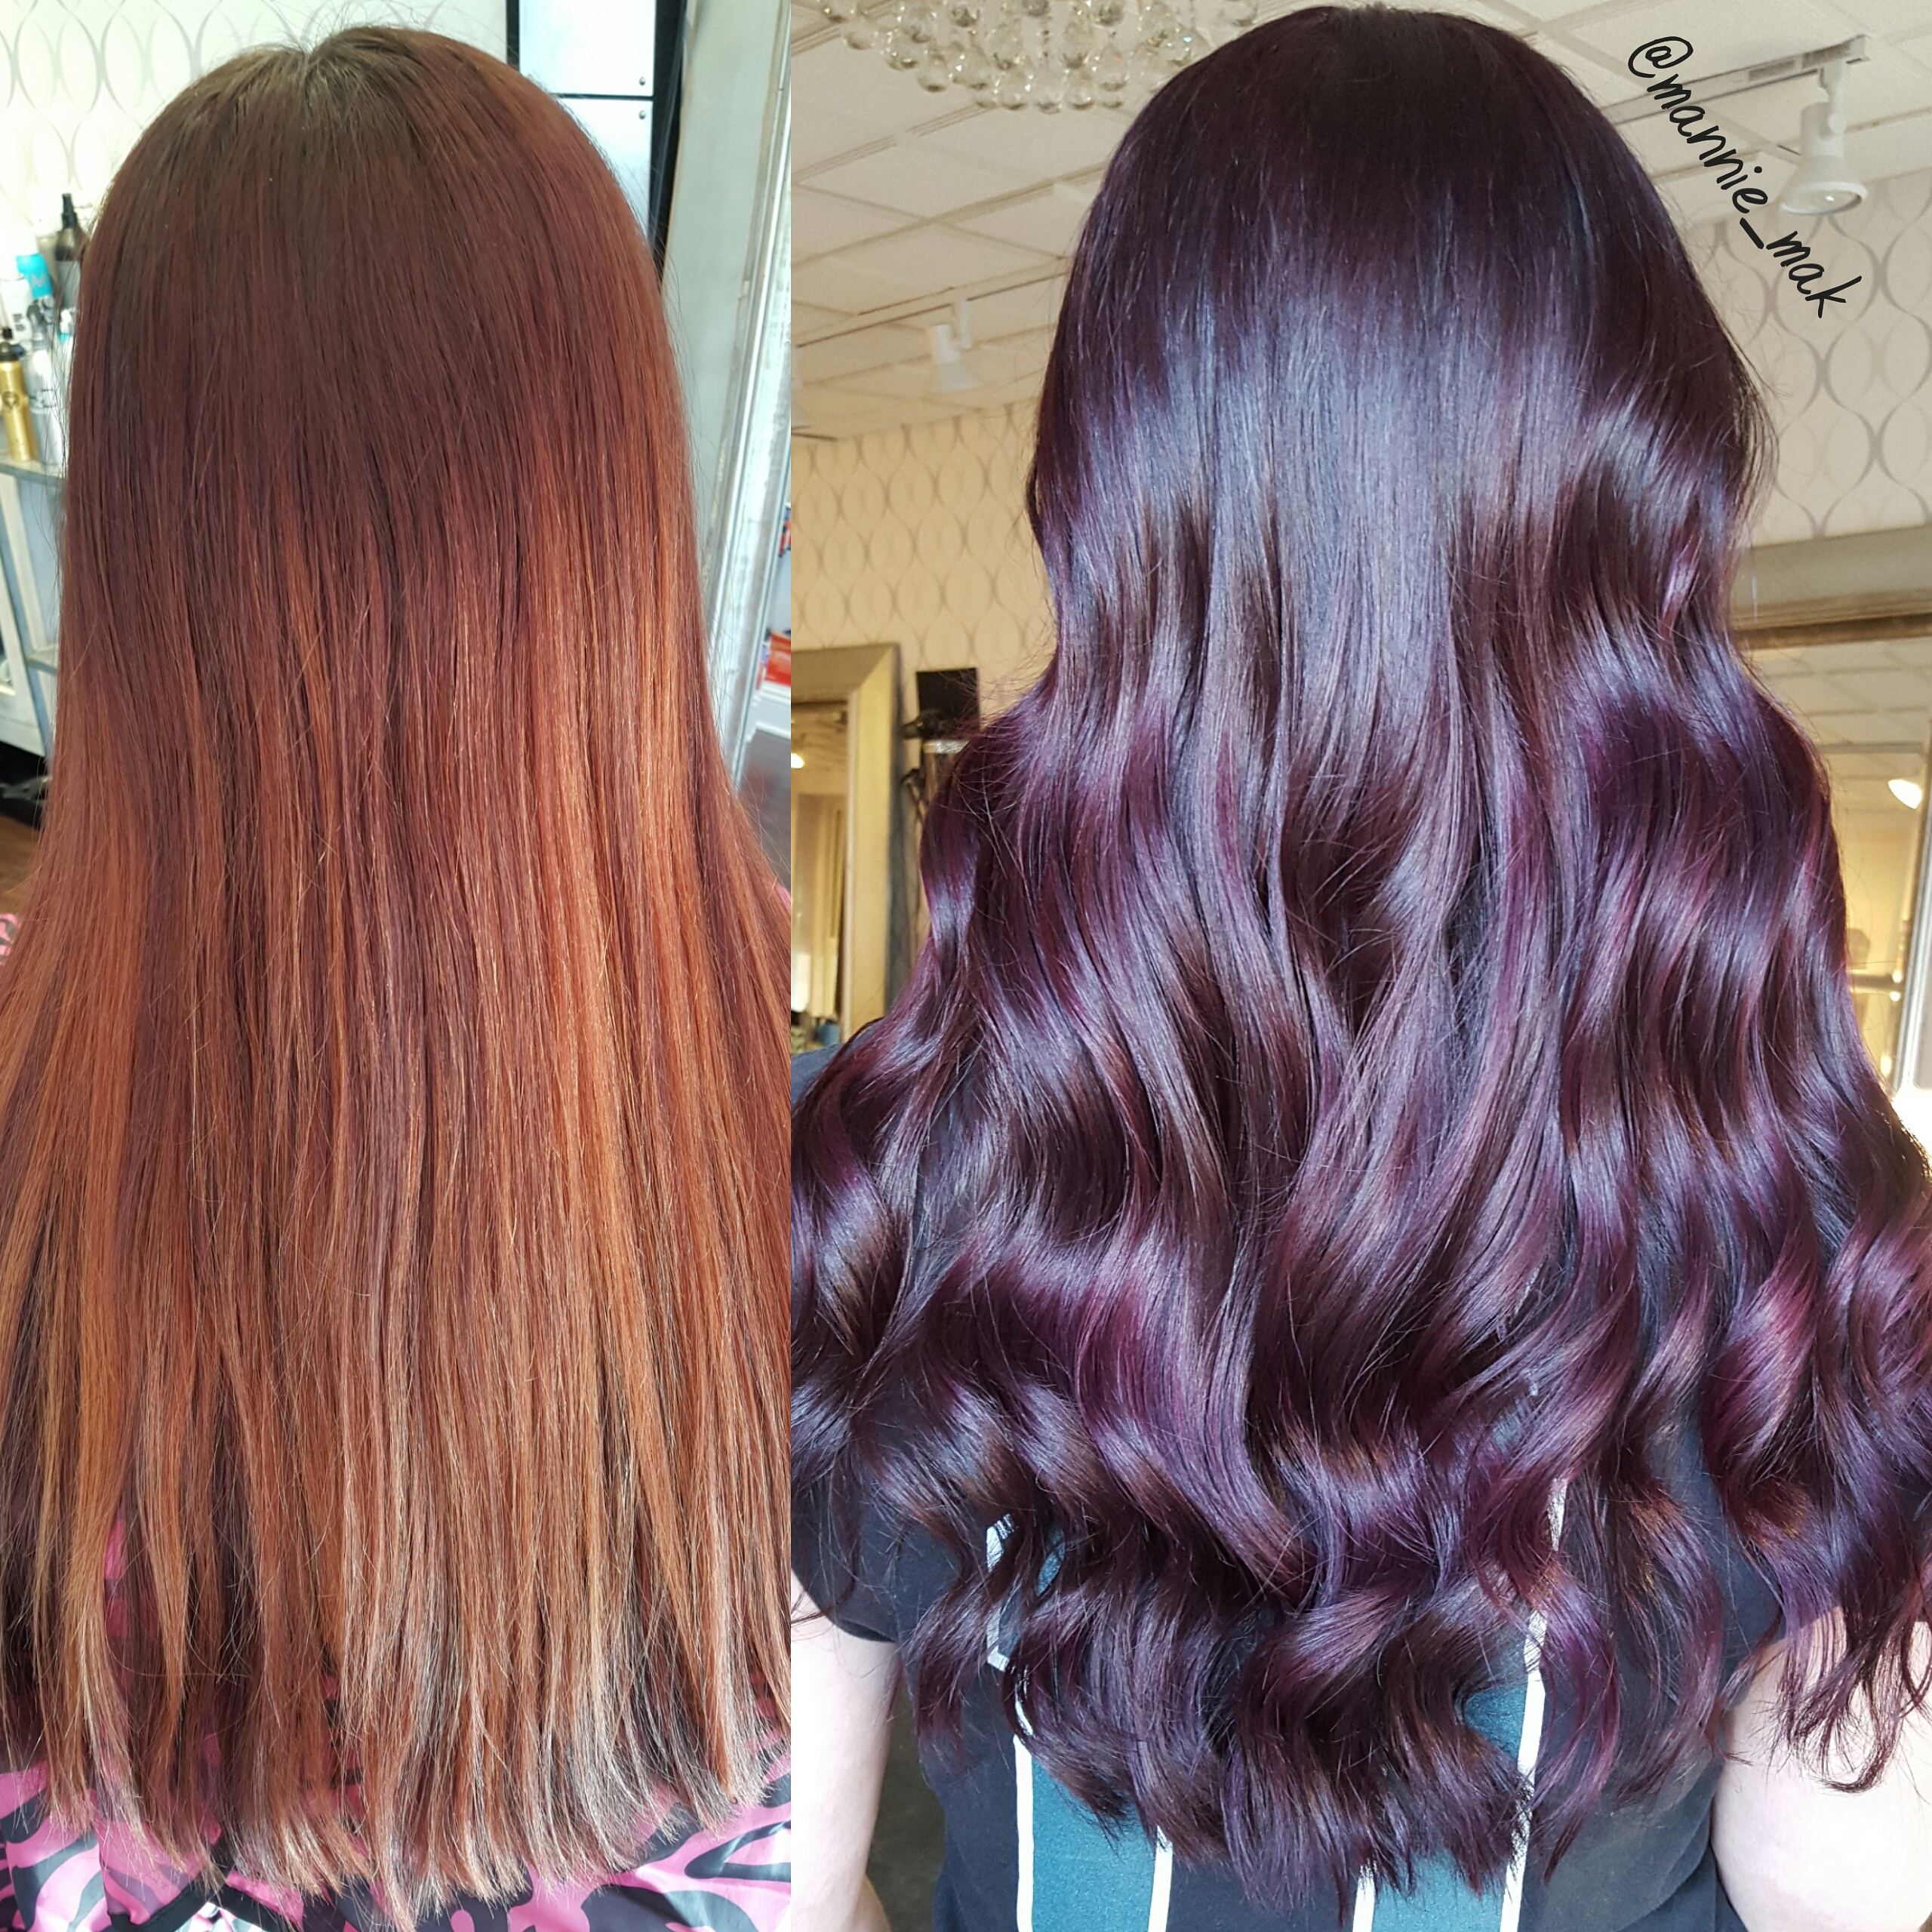 MAKEOVER: Faded Cherry To Vibrant Violet